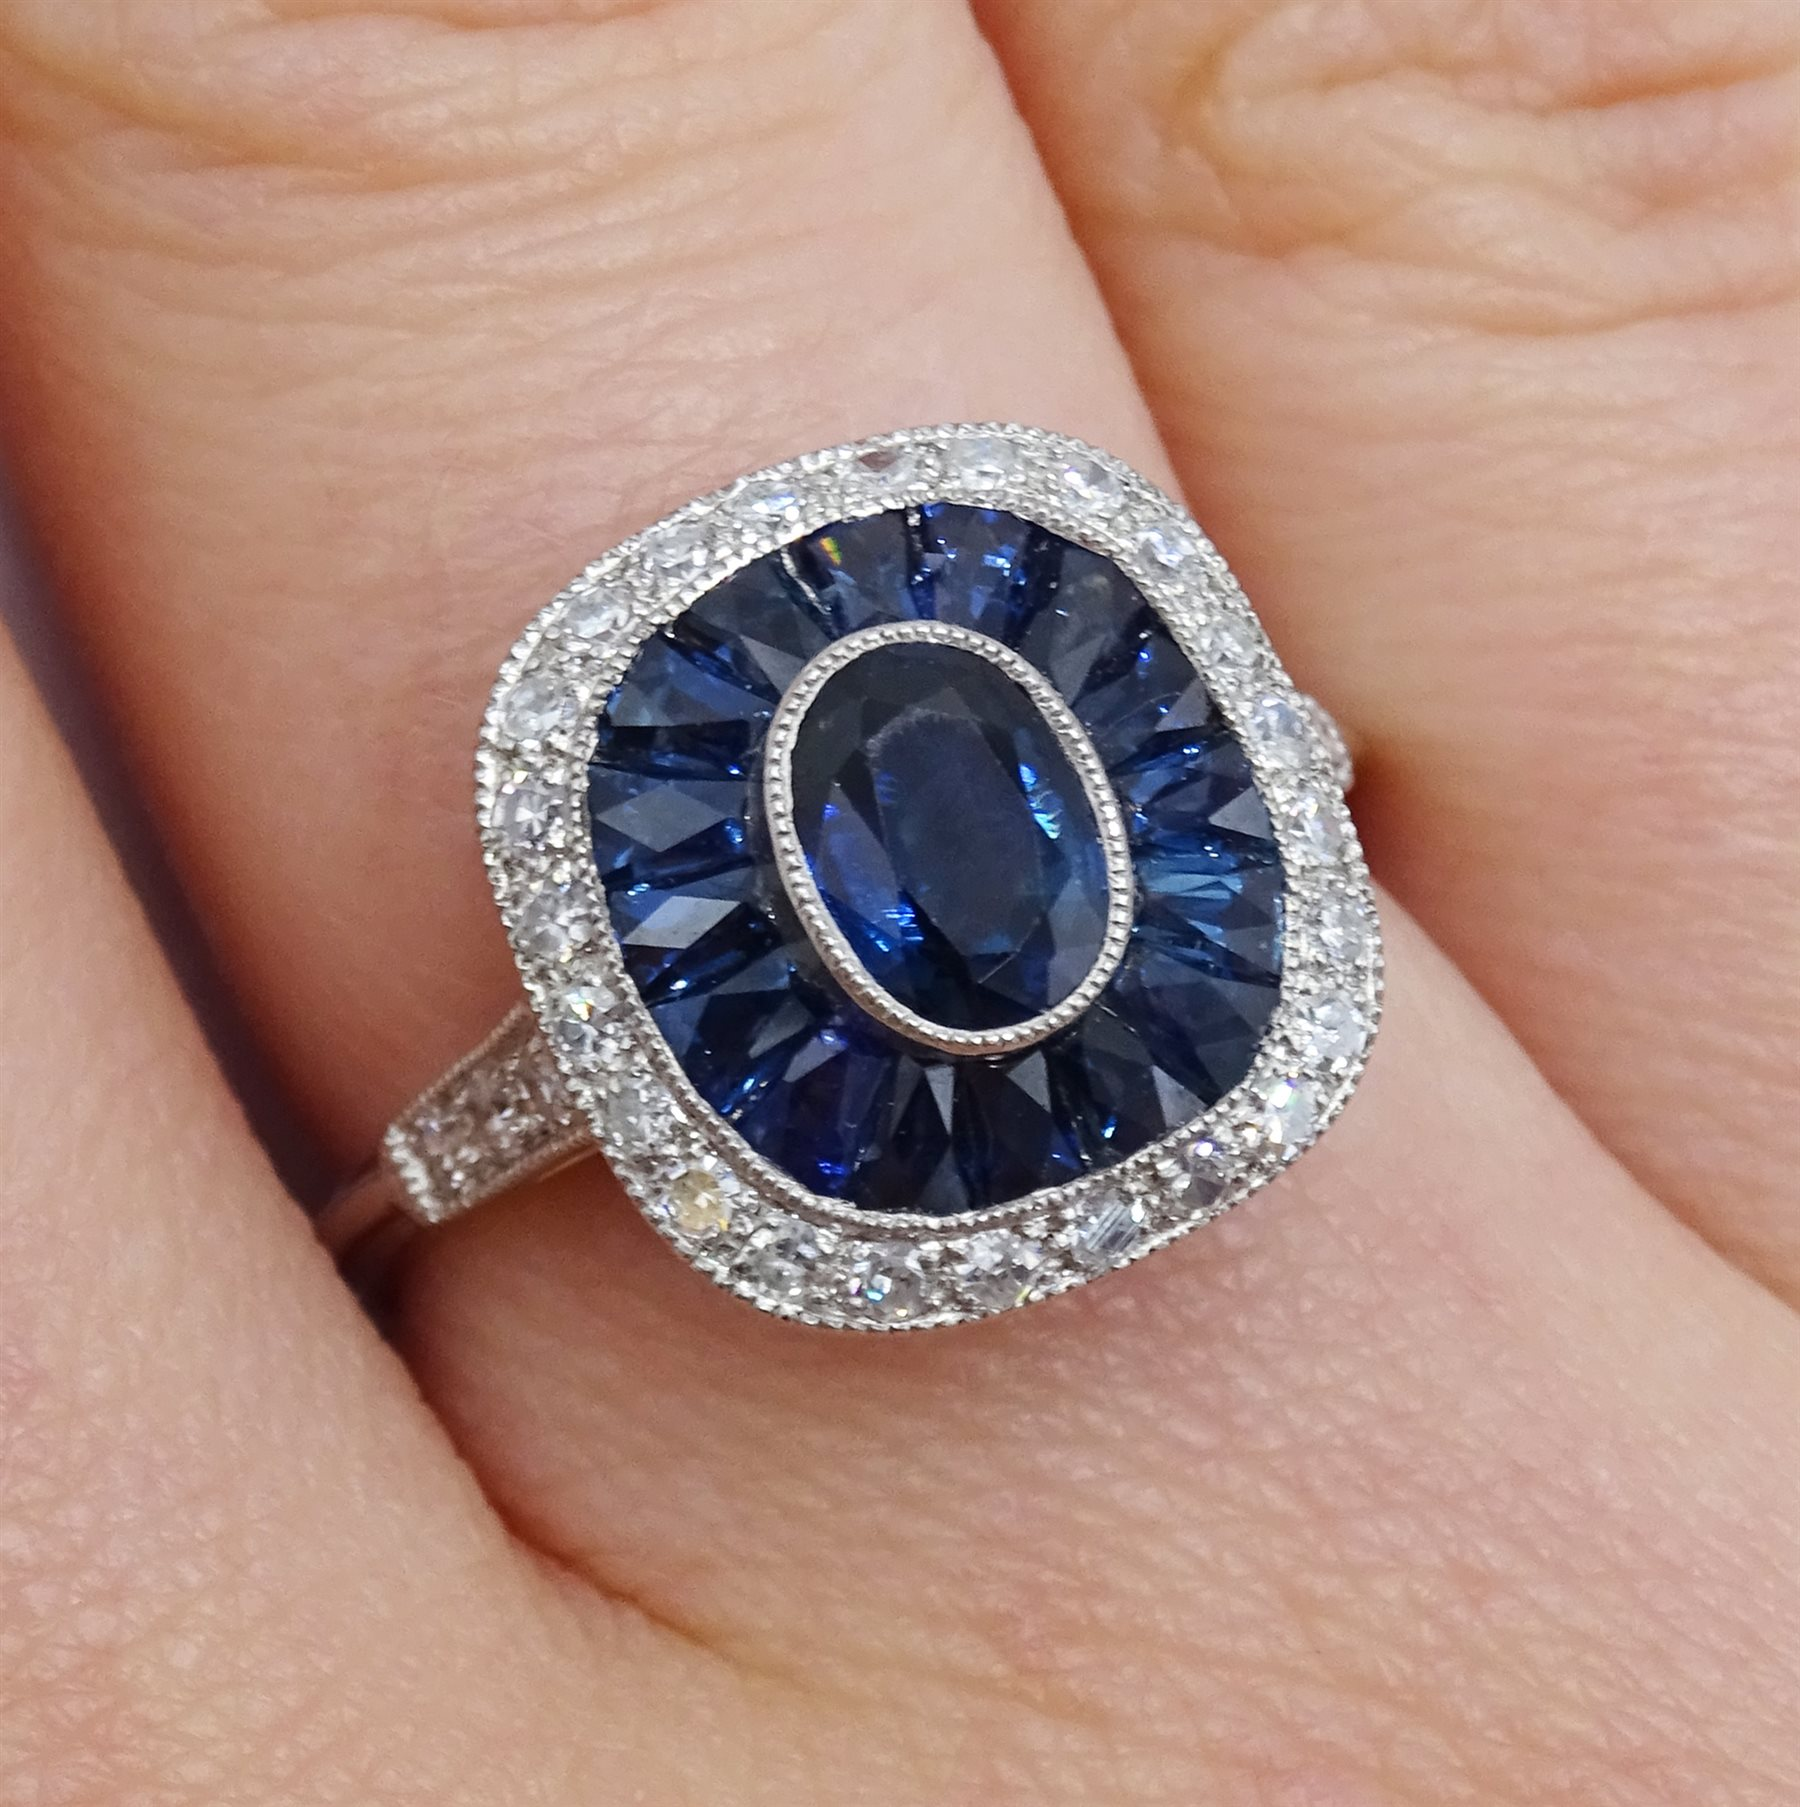 Platinum sapphire and diamond ring, the central oval sapphire surrounded by halo of calibre cut - Image 2 of 5